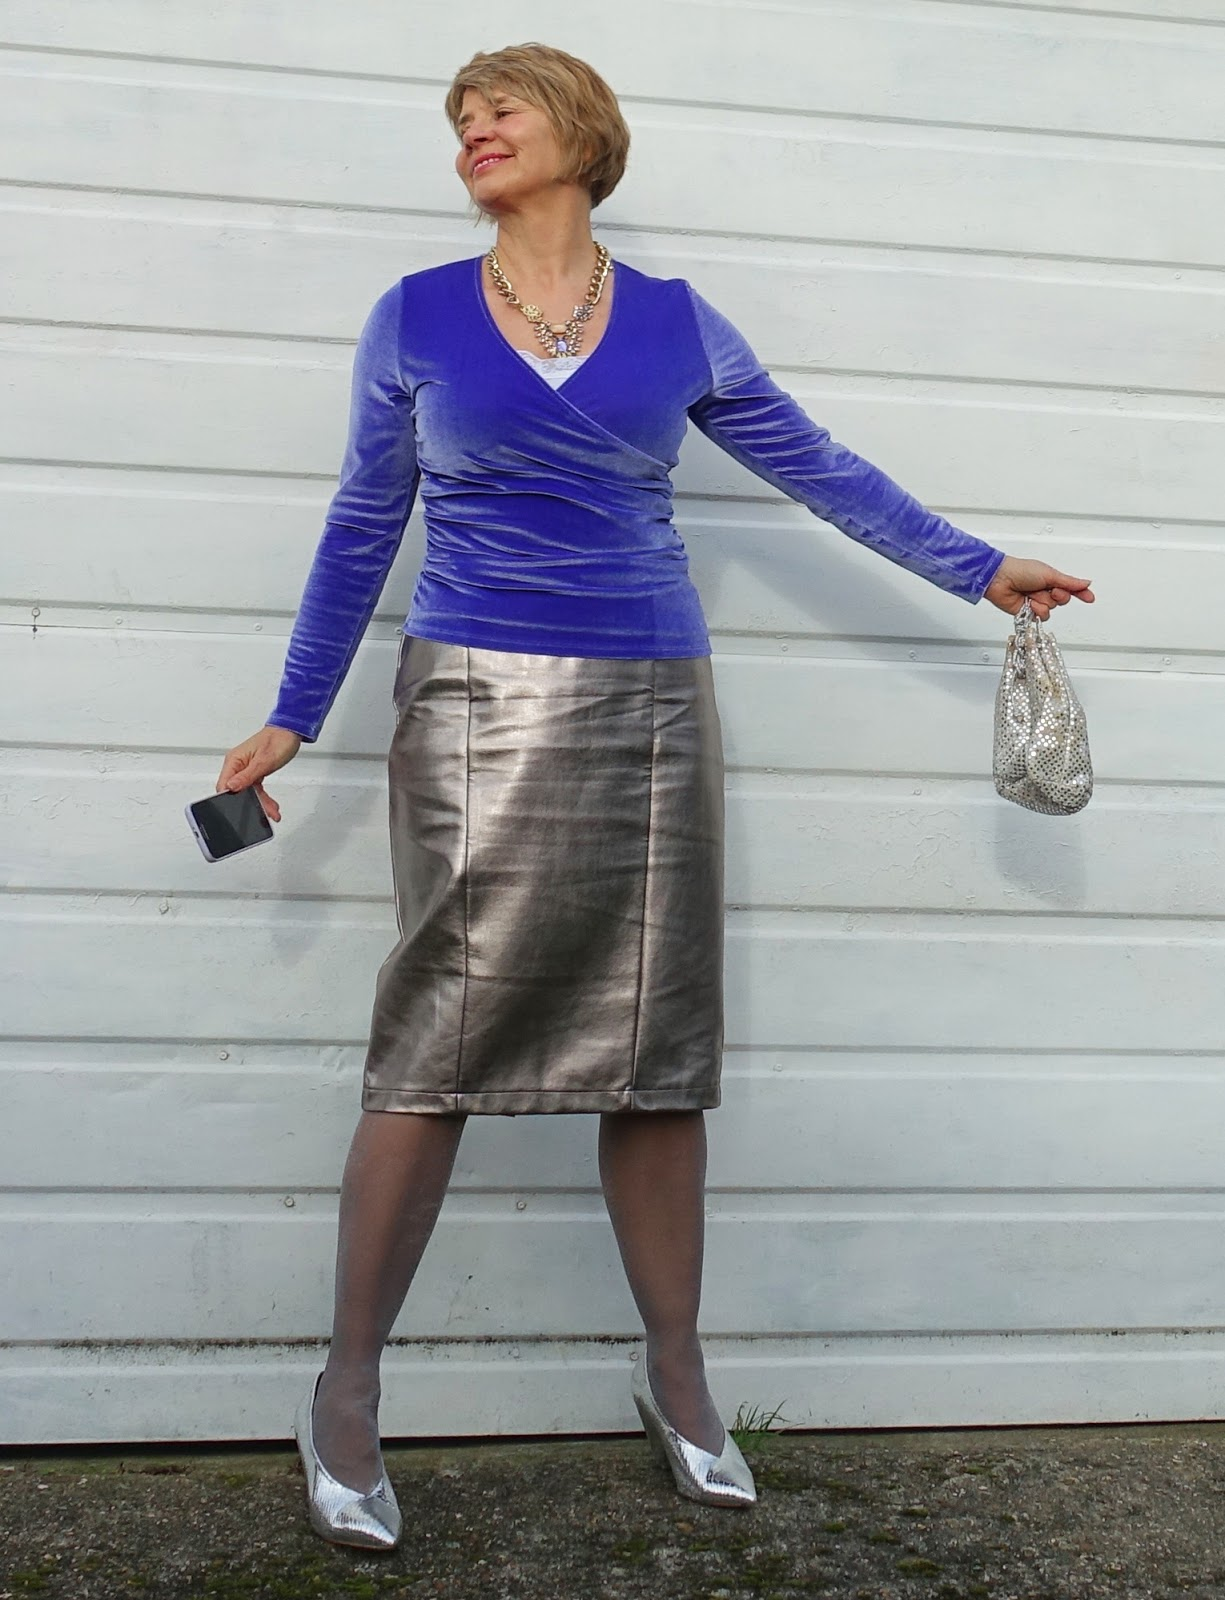 Image showing a middle aged woman posing against a white garage door wearing silver skirt and shoes and an iris blue velvet top